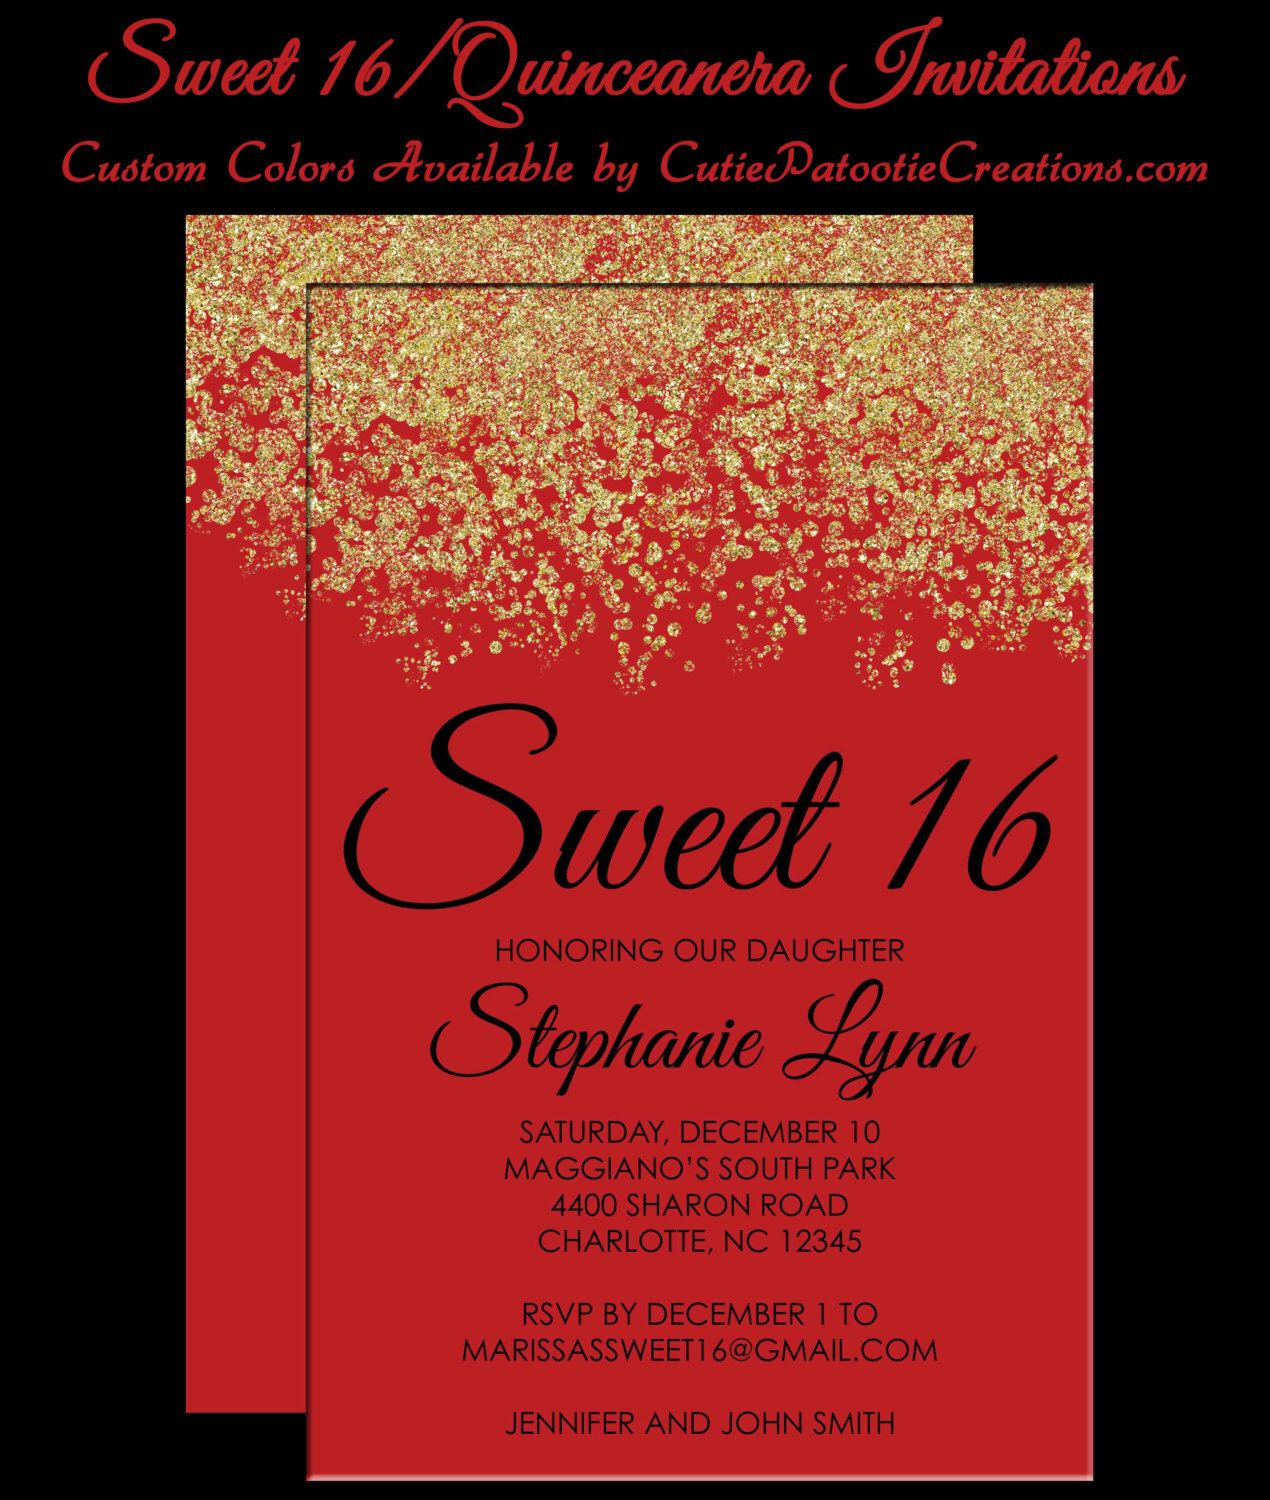 Sweet 16 Invitations - Quinceanera Invitation - Red and Gold Sparkle ...